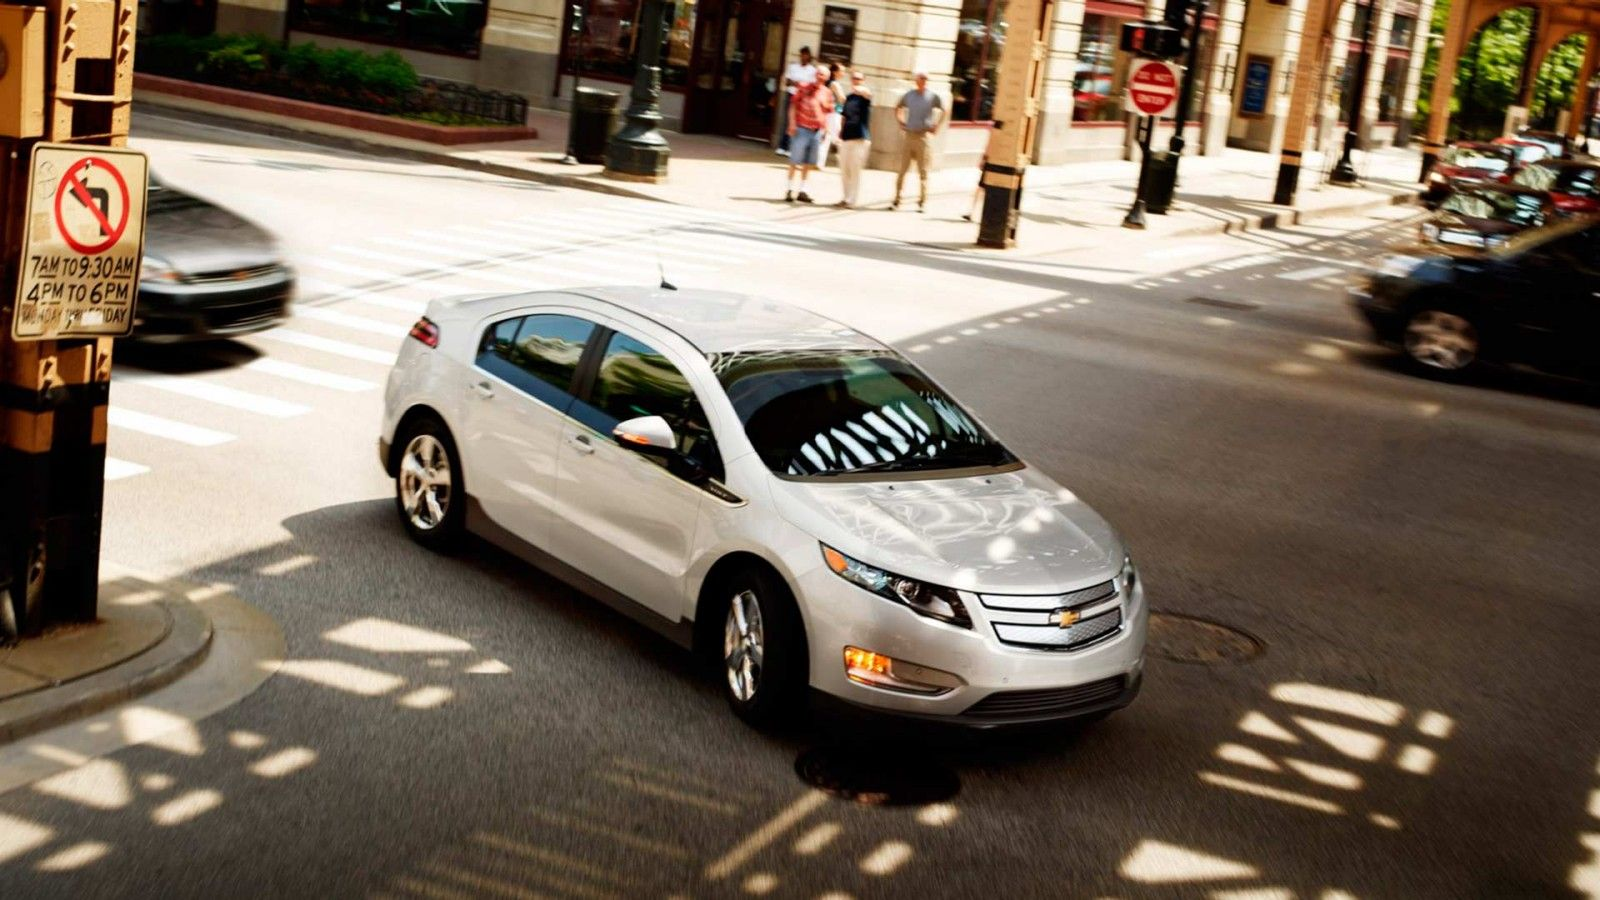 2014 Chevy Volt Electric Car Range 380 Miles 38 Electric Price 34 185 00 Type Plug In Hybrid Electric Vehicle Phev Electric Cars For Sale Electric Car Range Car Chevrolet